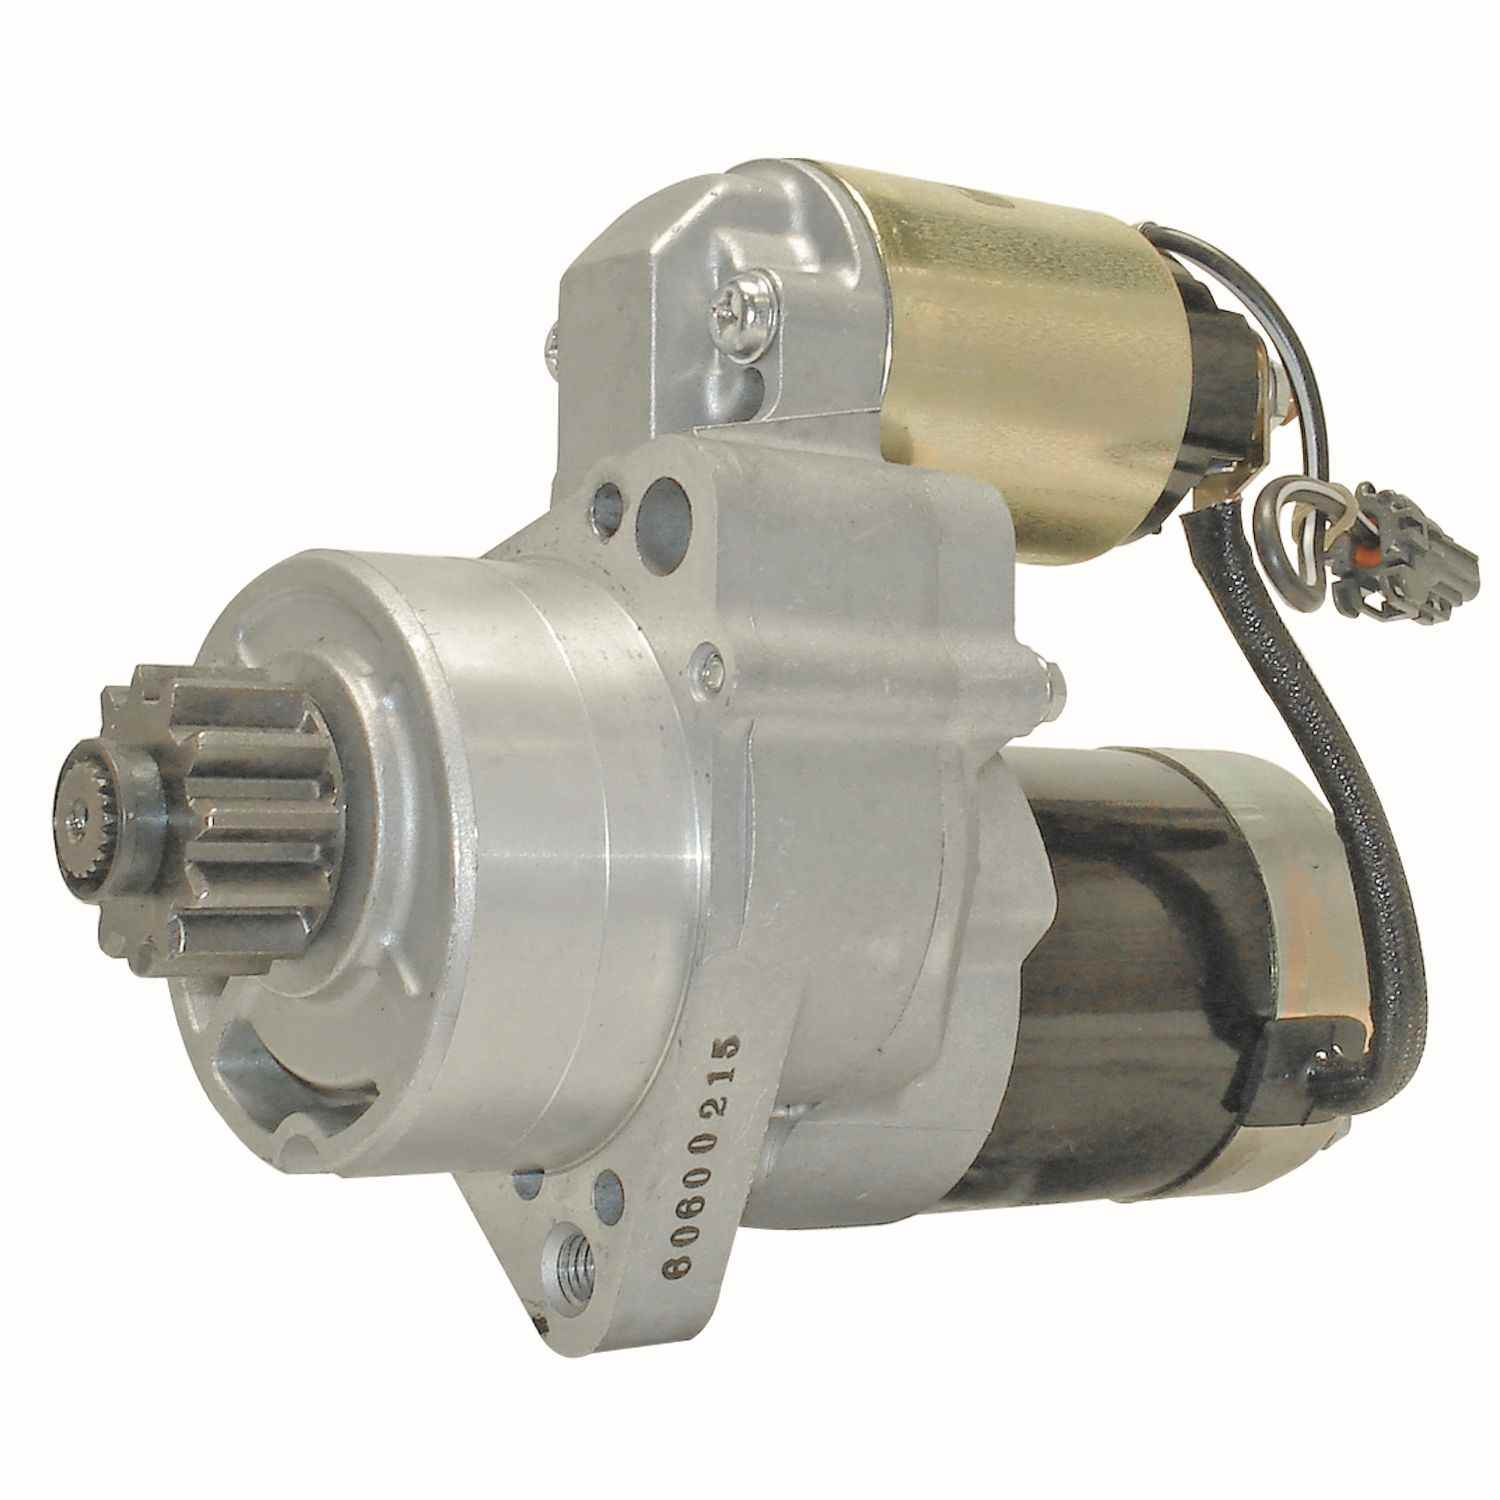 ACDELCO GOLD/PROFESSIONAL - Reman Starter Motor - DCC 336-1761